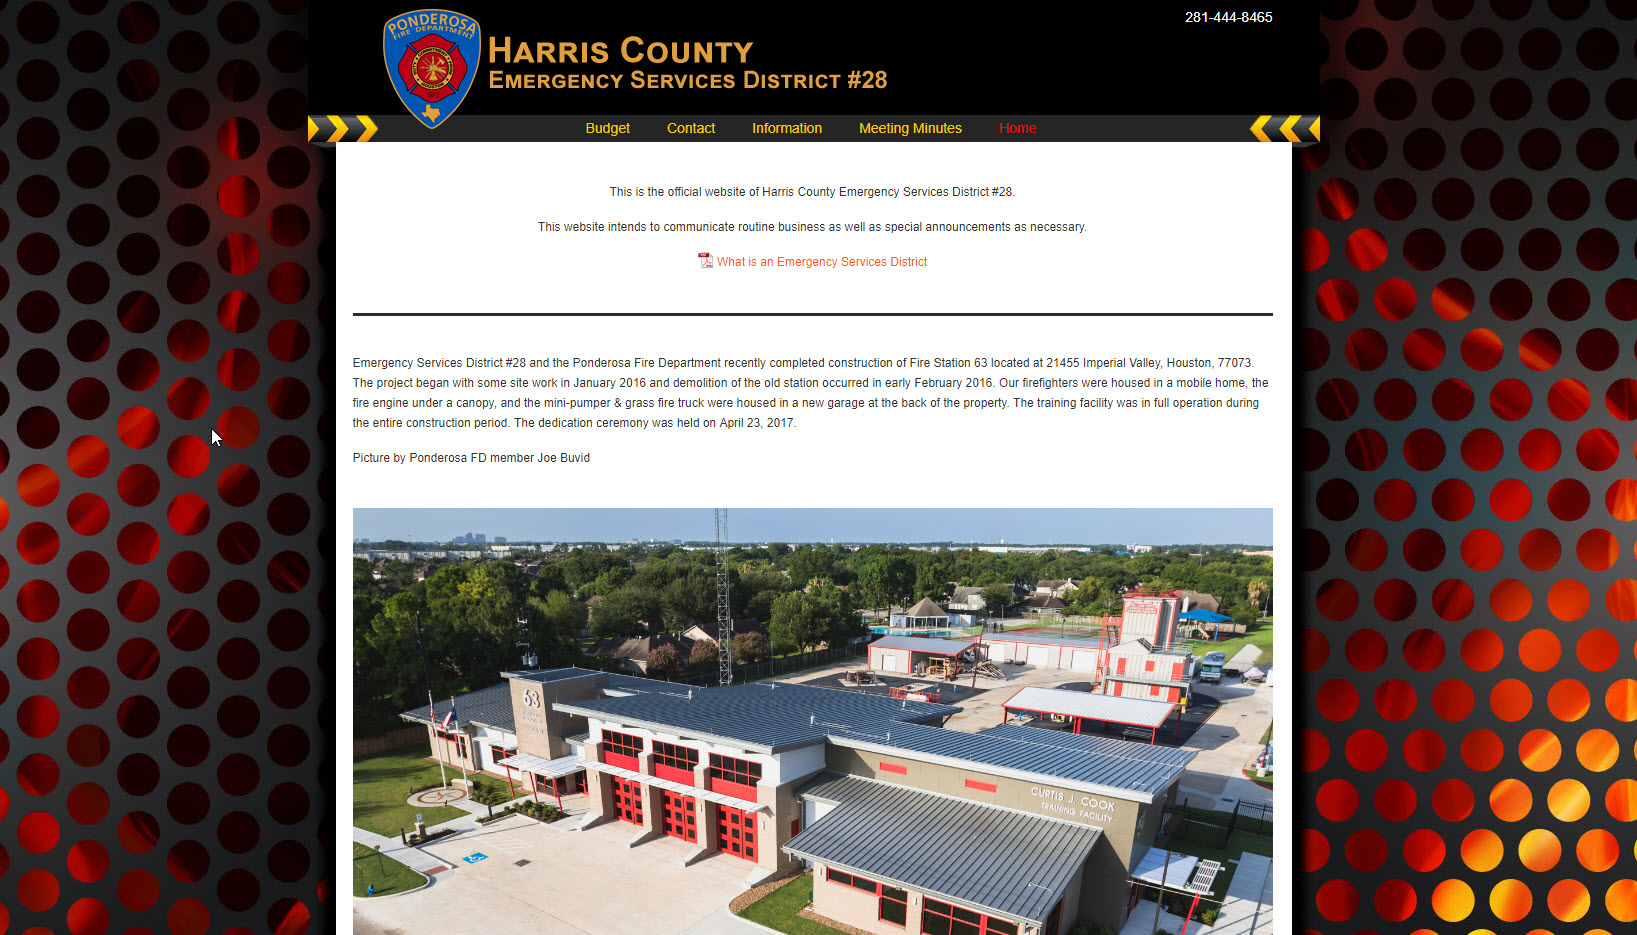 Harris County Emergency Services District #28